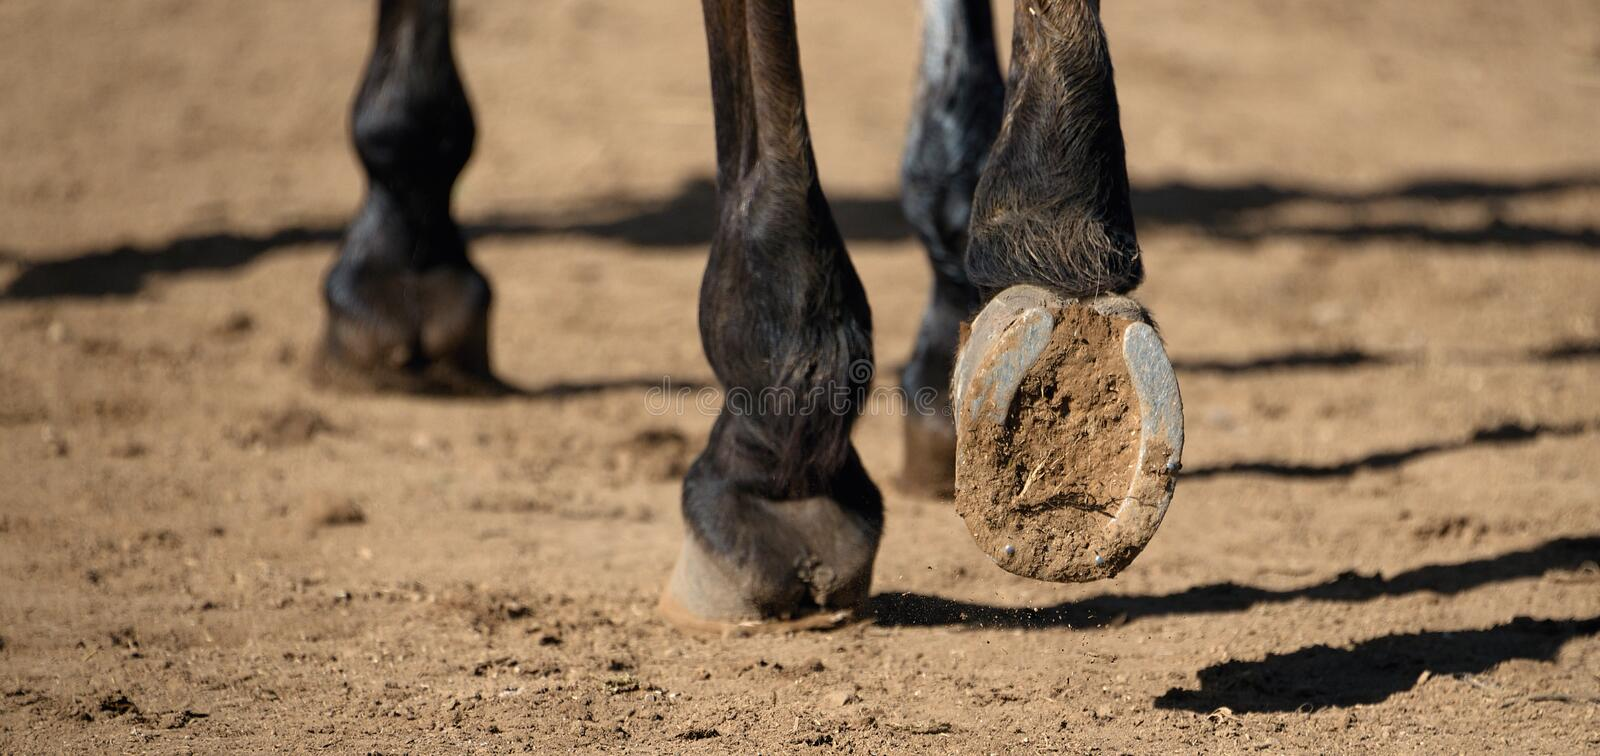 Detailed view of horse hoof foot outside stables stock image